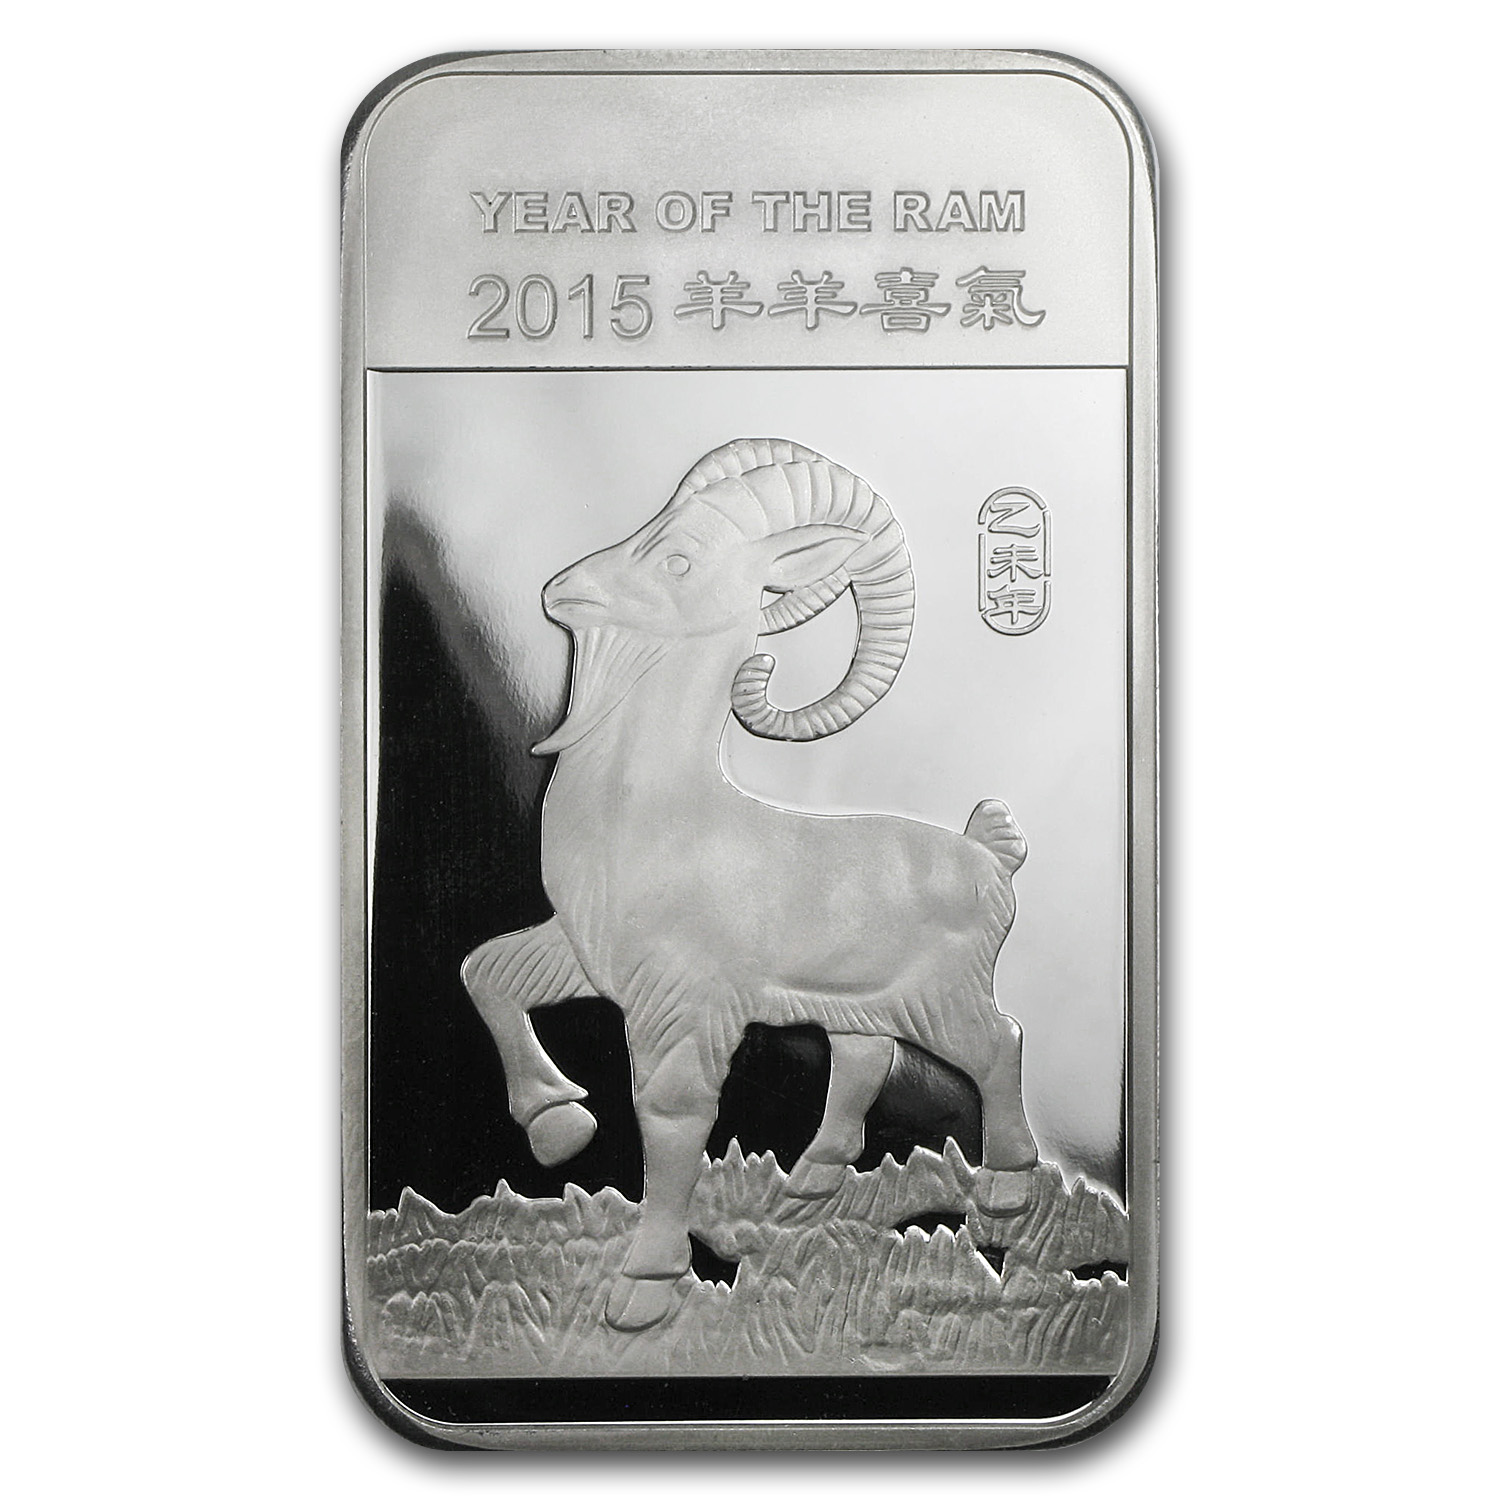 5 oz Silver Bar - APMEX (2015 Year of the Ram)